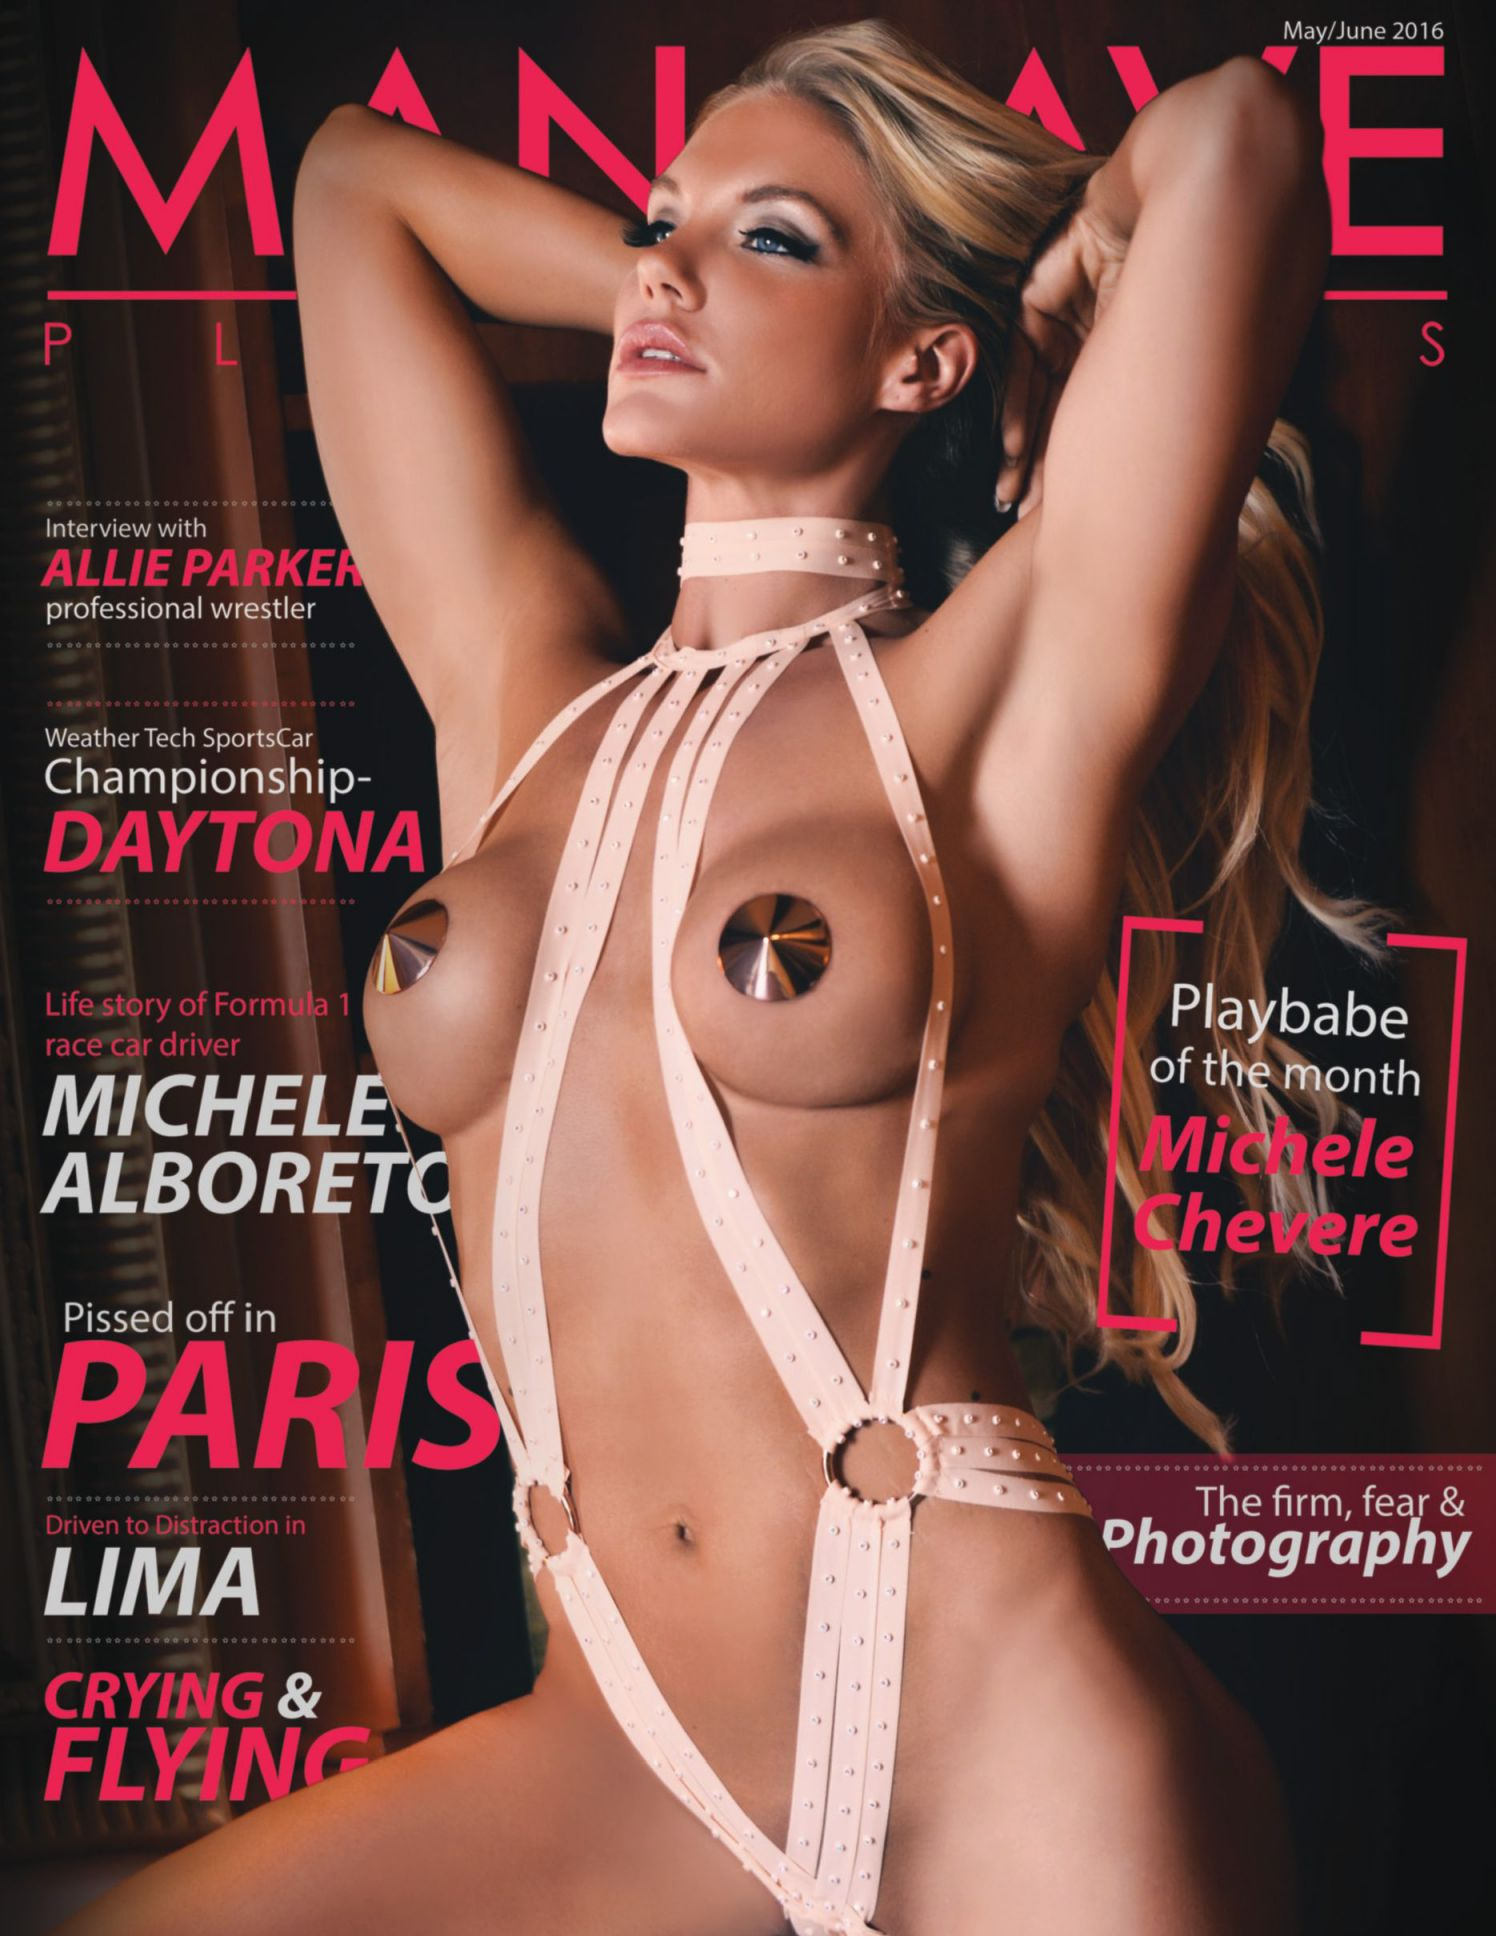 Michele Chevere Topless P...